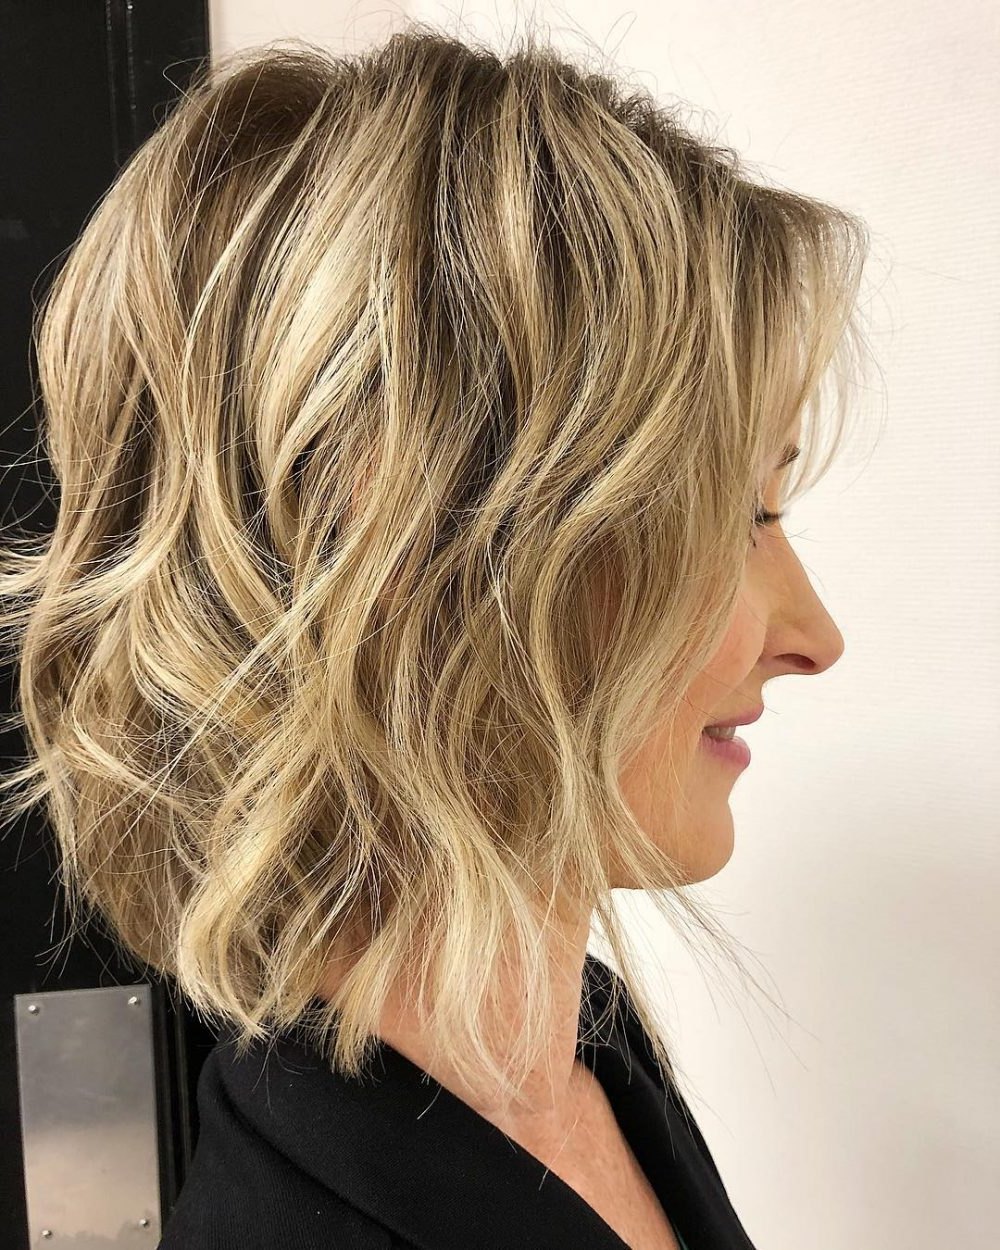 43 Perfect Short Hairstyles For Fine Hair In 2018 Inside Trendy Short Haircuts For Fine Hair (View 6 of 25)